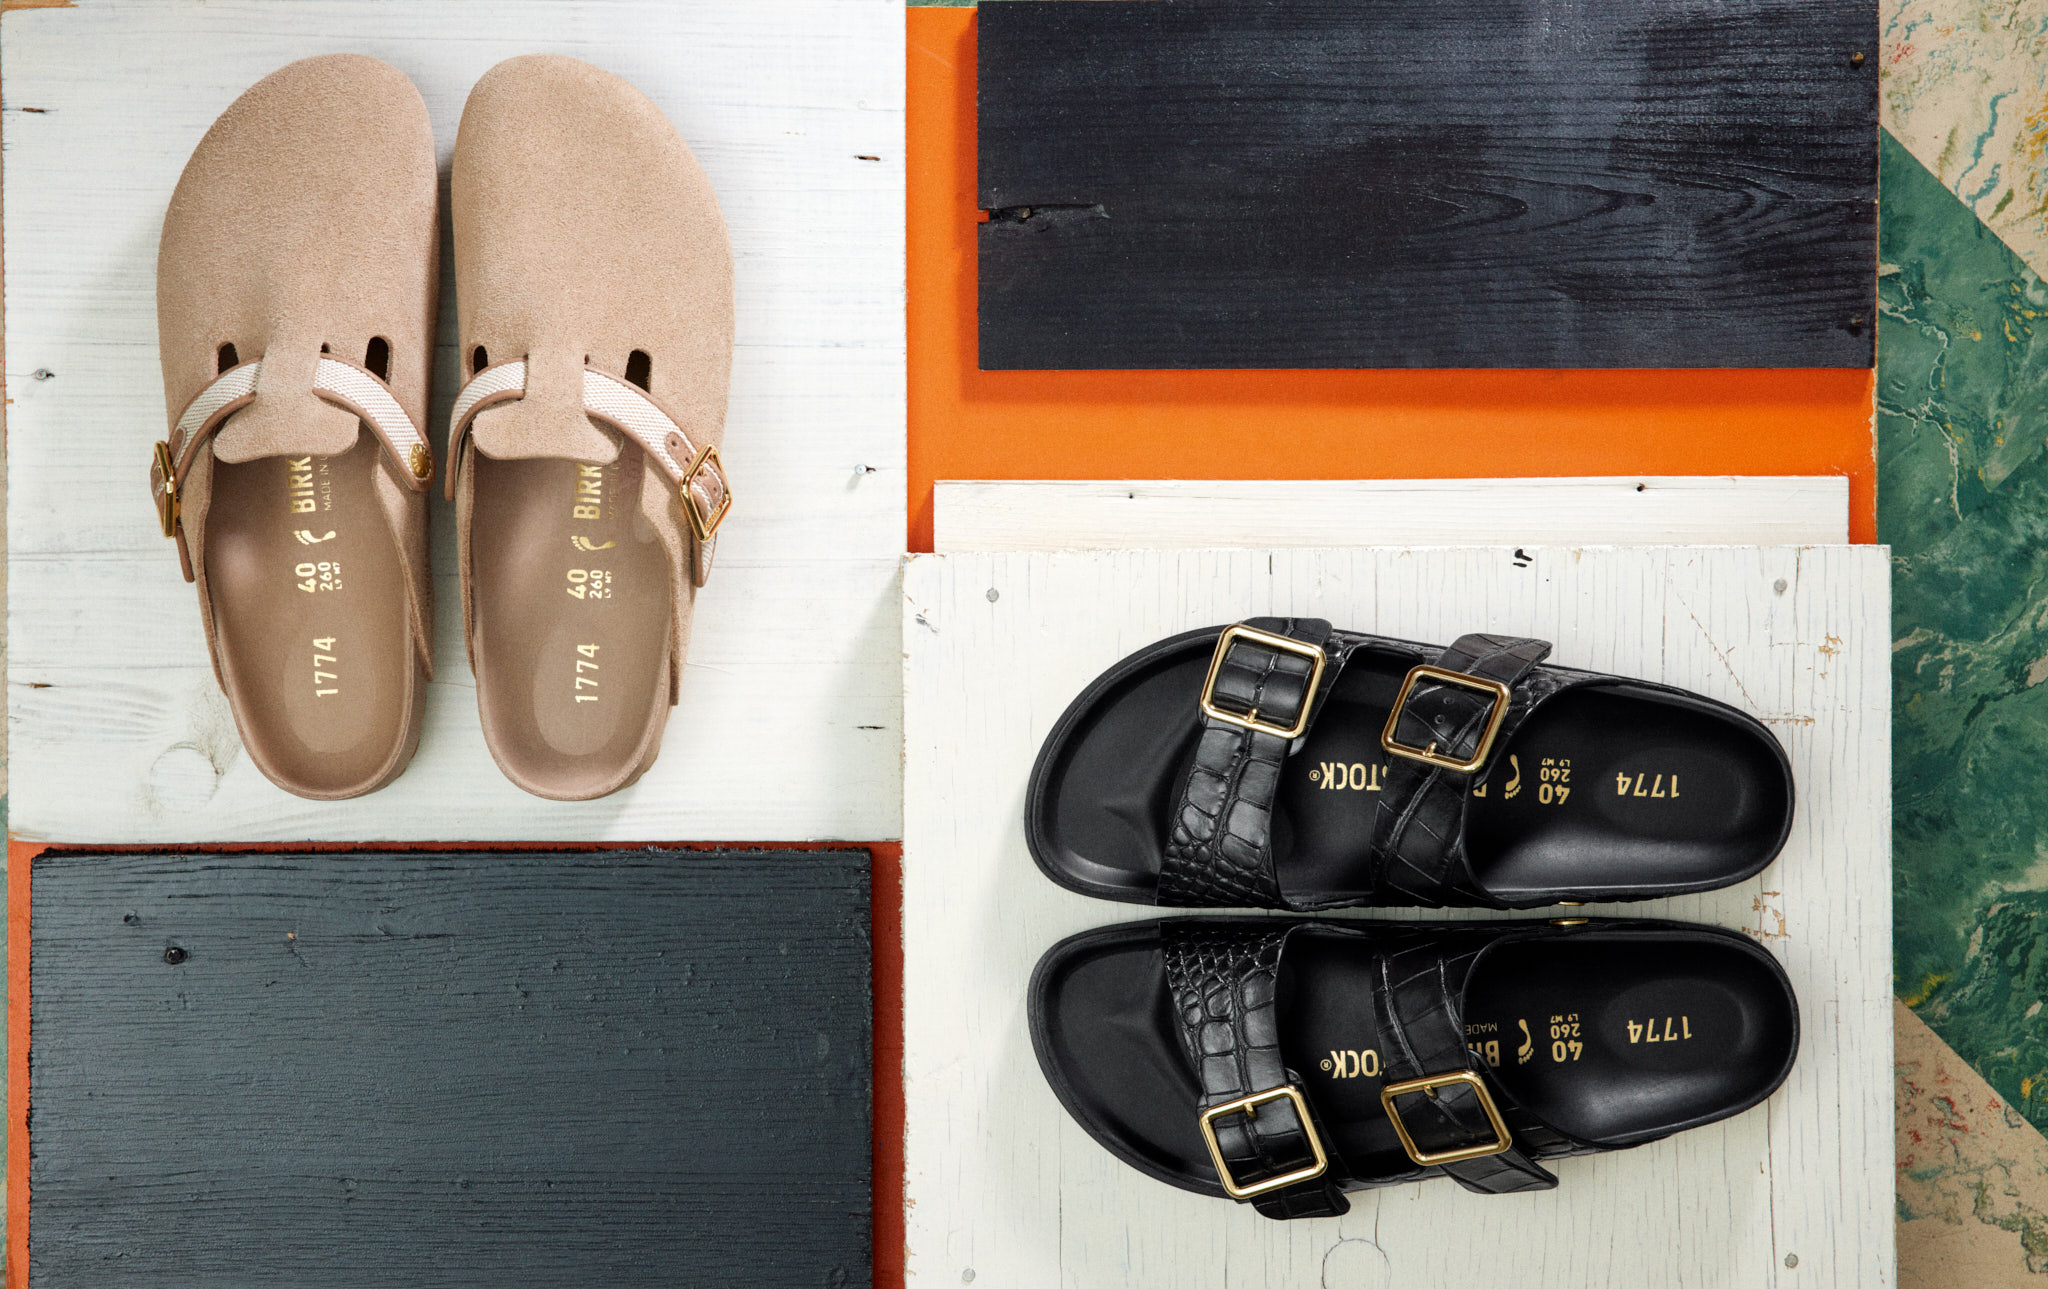 BIRKENSTOCK LAUNCHES SECOND 1774 COLLECTION WITH EXCLUSIVE FIRST DROP #birkenstock1774